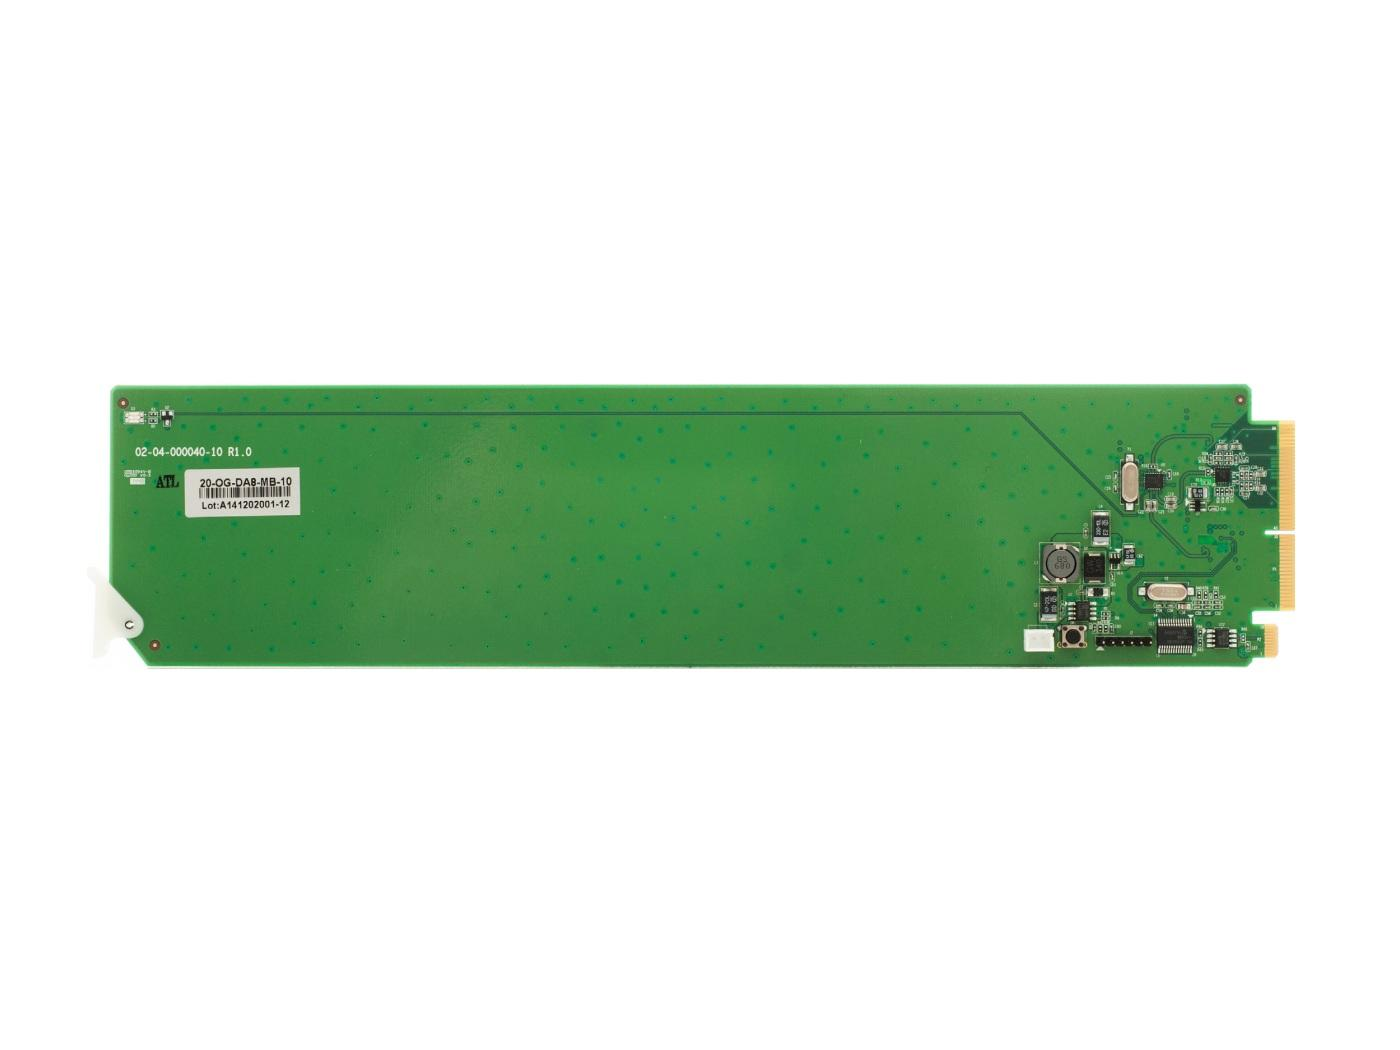 OG-DA-4HD-II-MB Stand Alone 1x4 Reclocking SDI Distribution Amplifier by Apantac